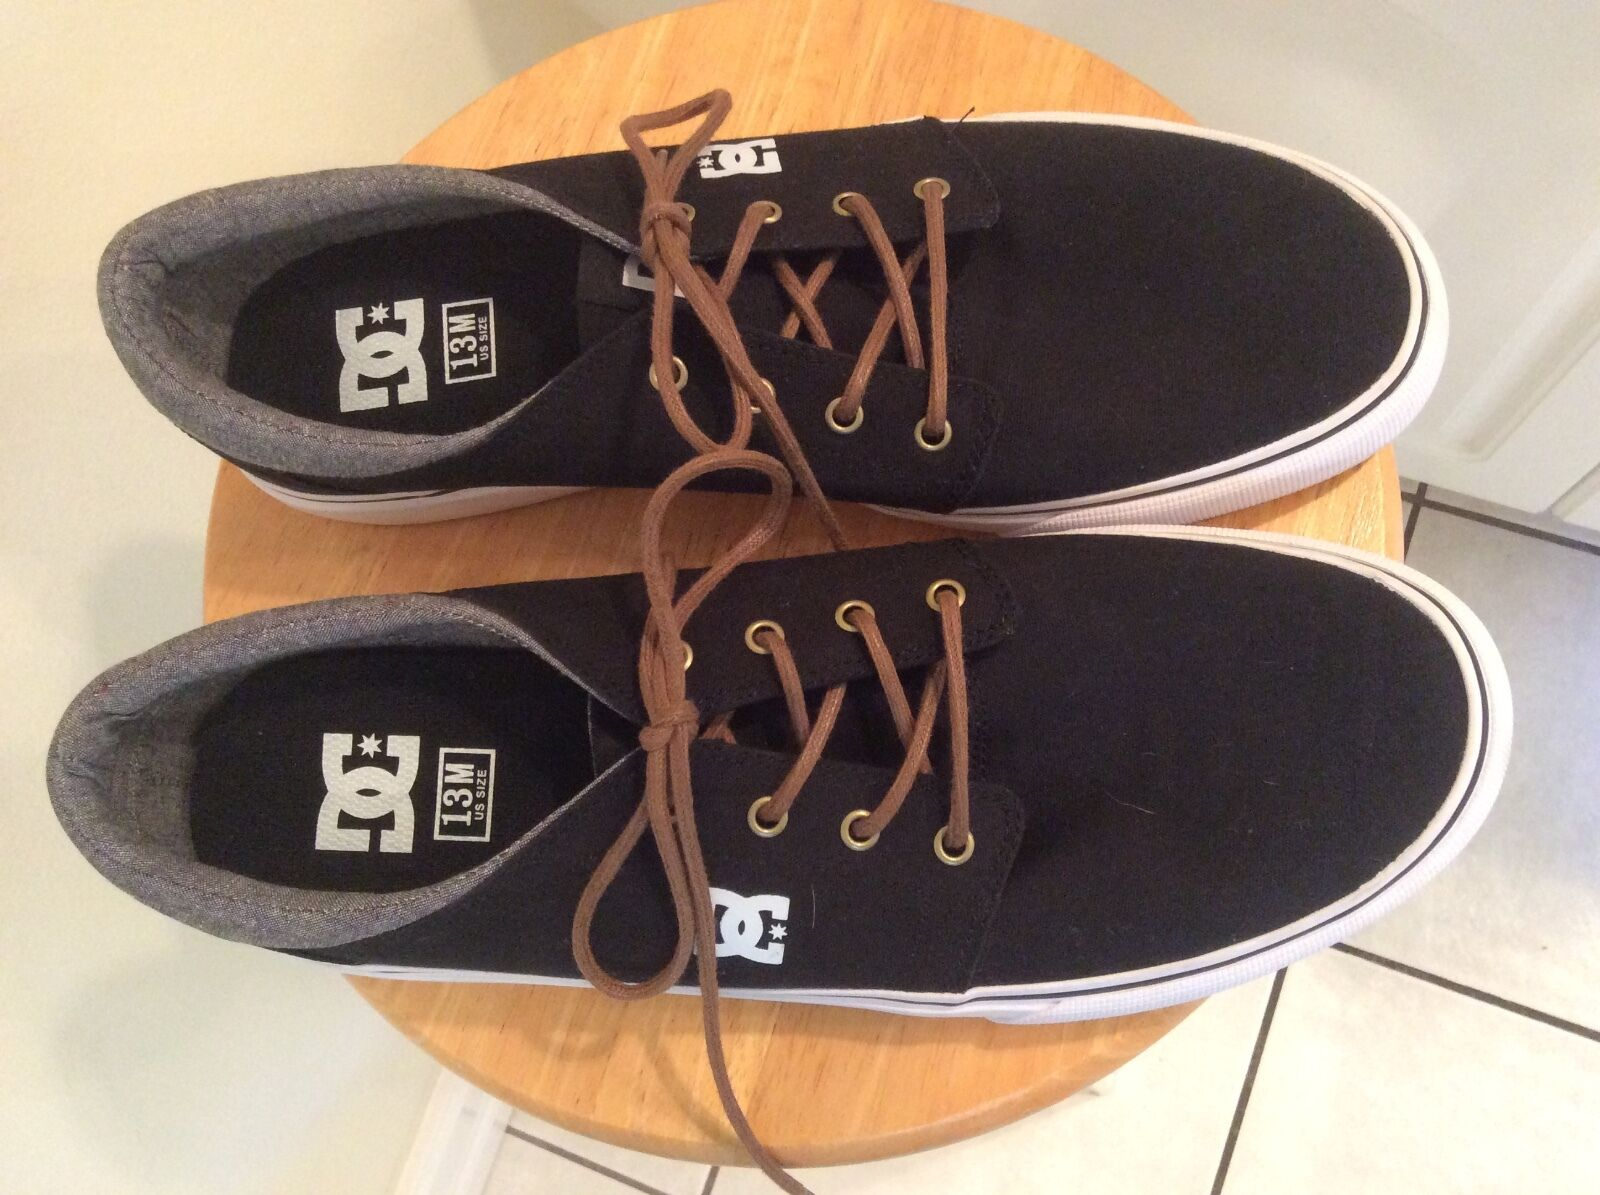 New Mens Size 13 DC Trase TX Skate Shoes Sneakers Black White NWOB Skateboard